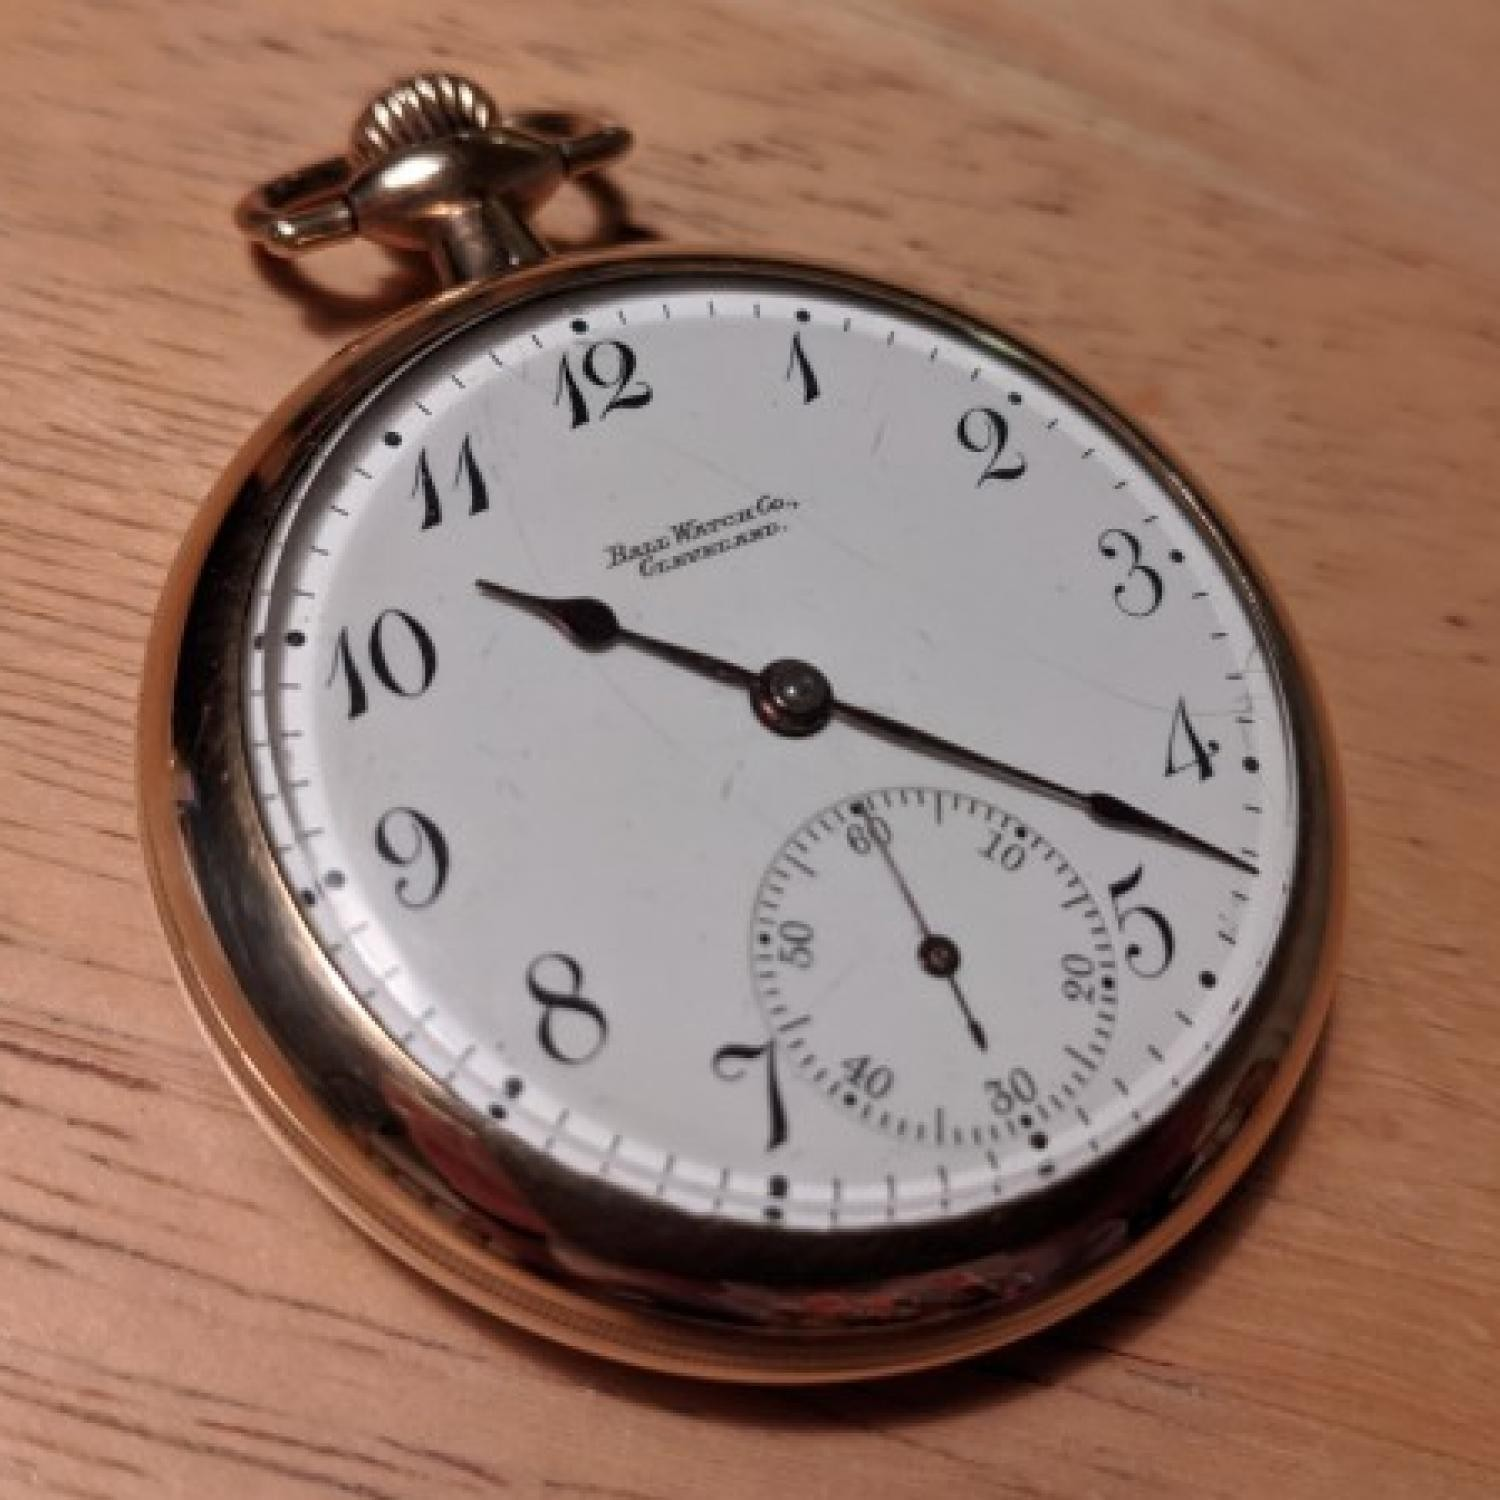 Image of Ball - Waltham Official Standard #B228191 Dial